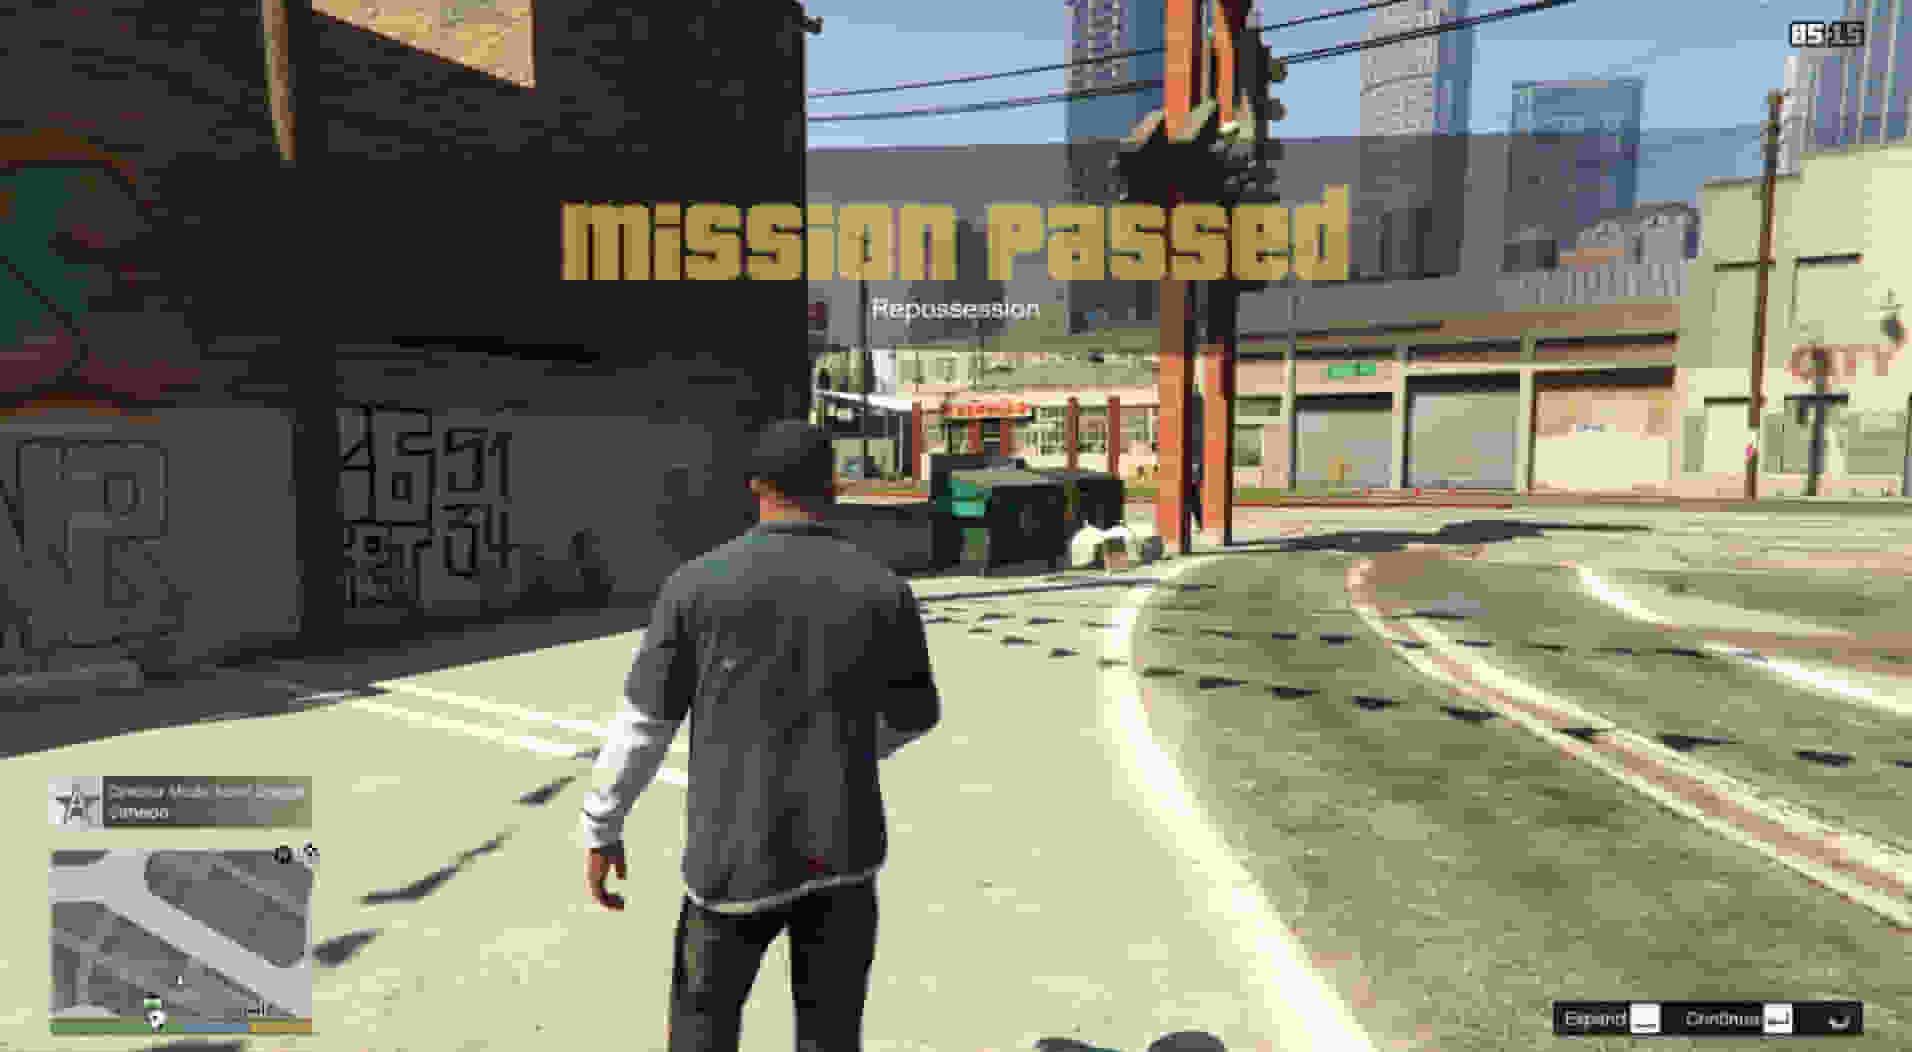 gta 6 features, gta 6 release date, gta 6 new features, gta 6 improvements, gta vi features, gta vi release date